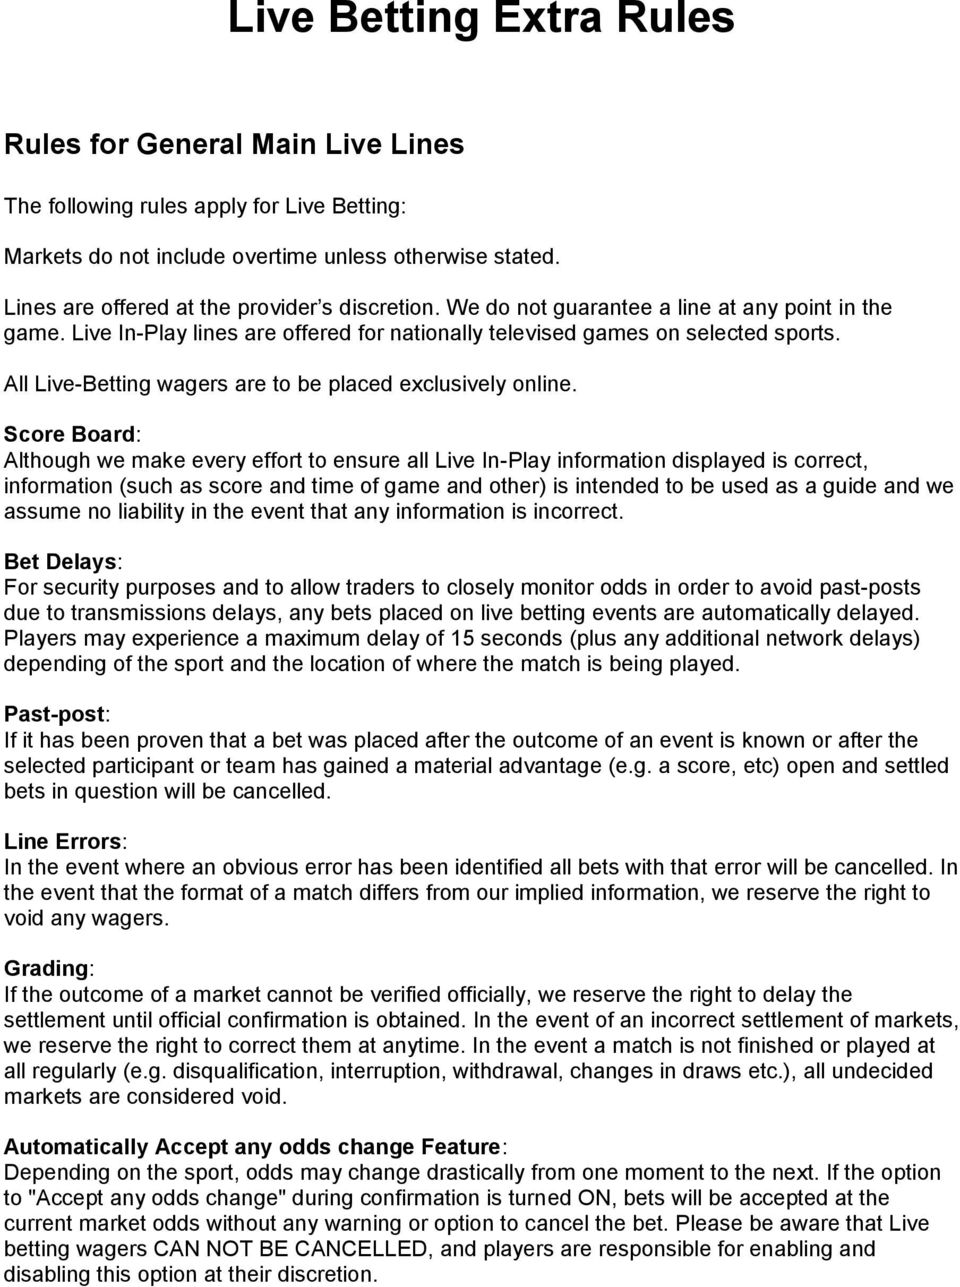 Live Betting Extra Rules - PDF